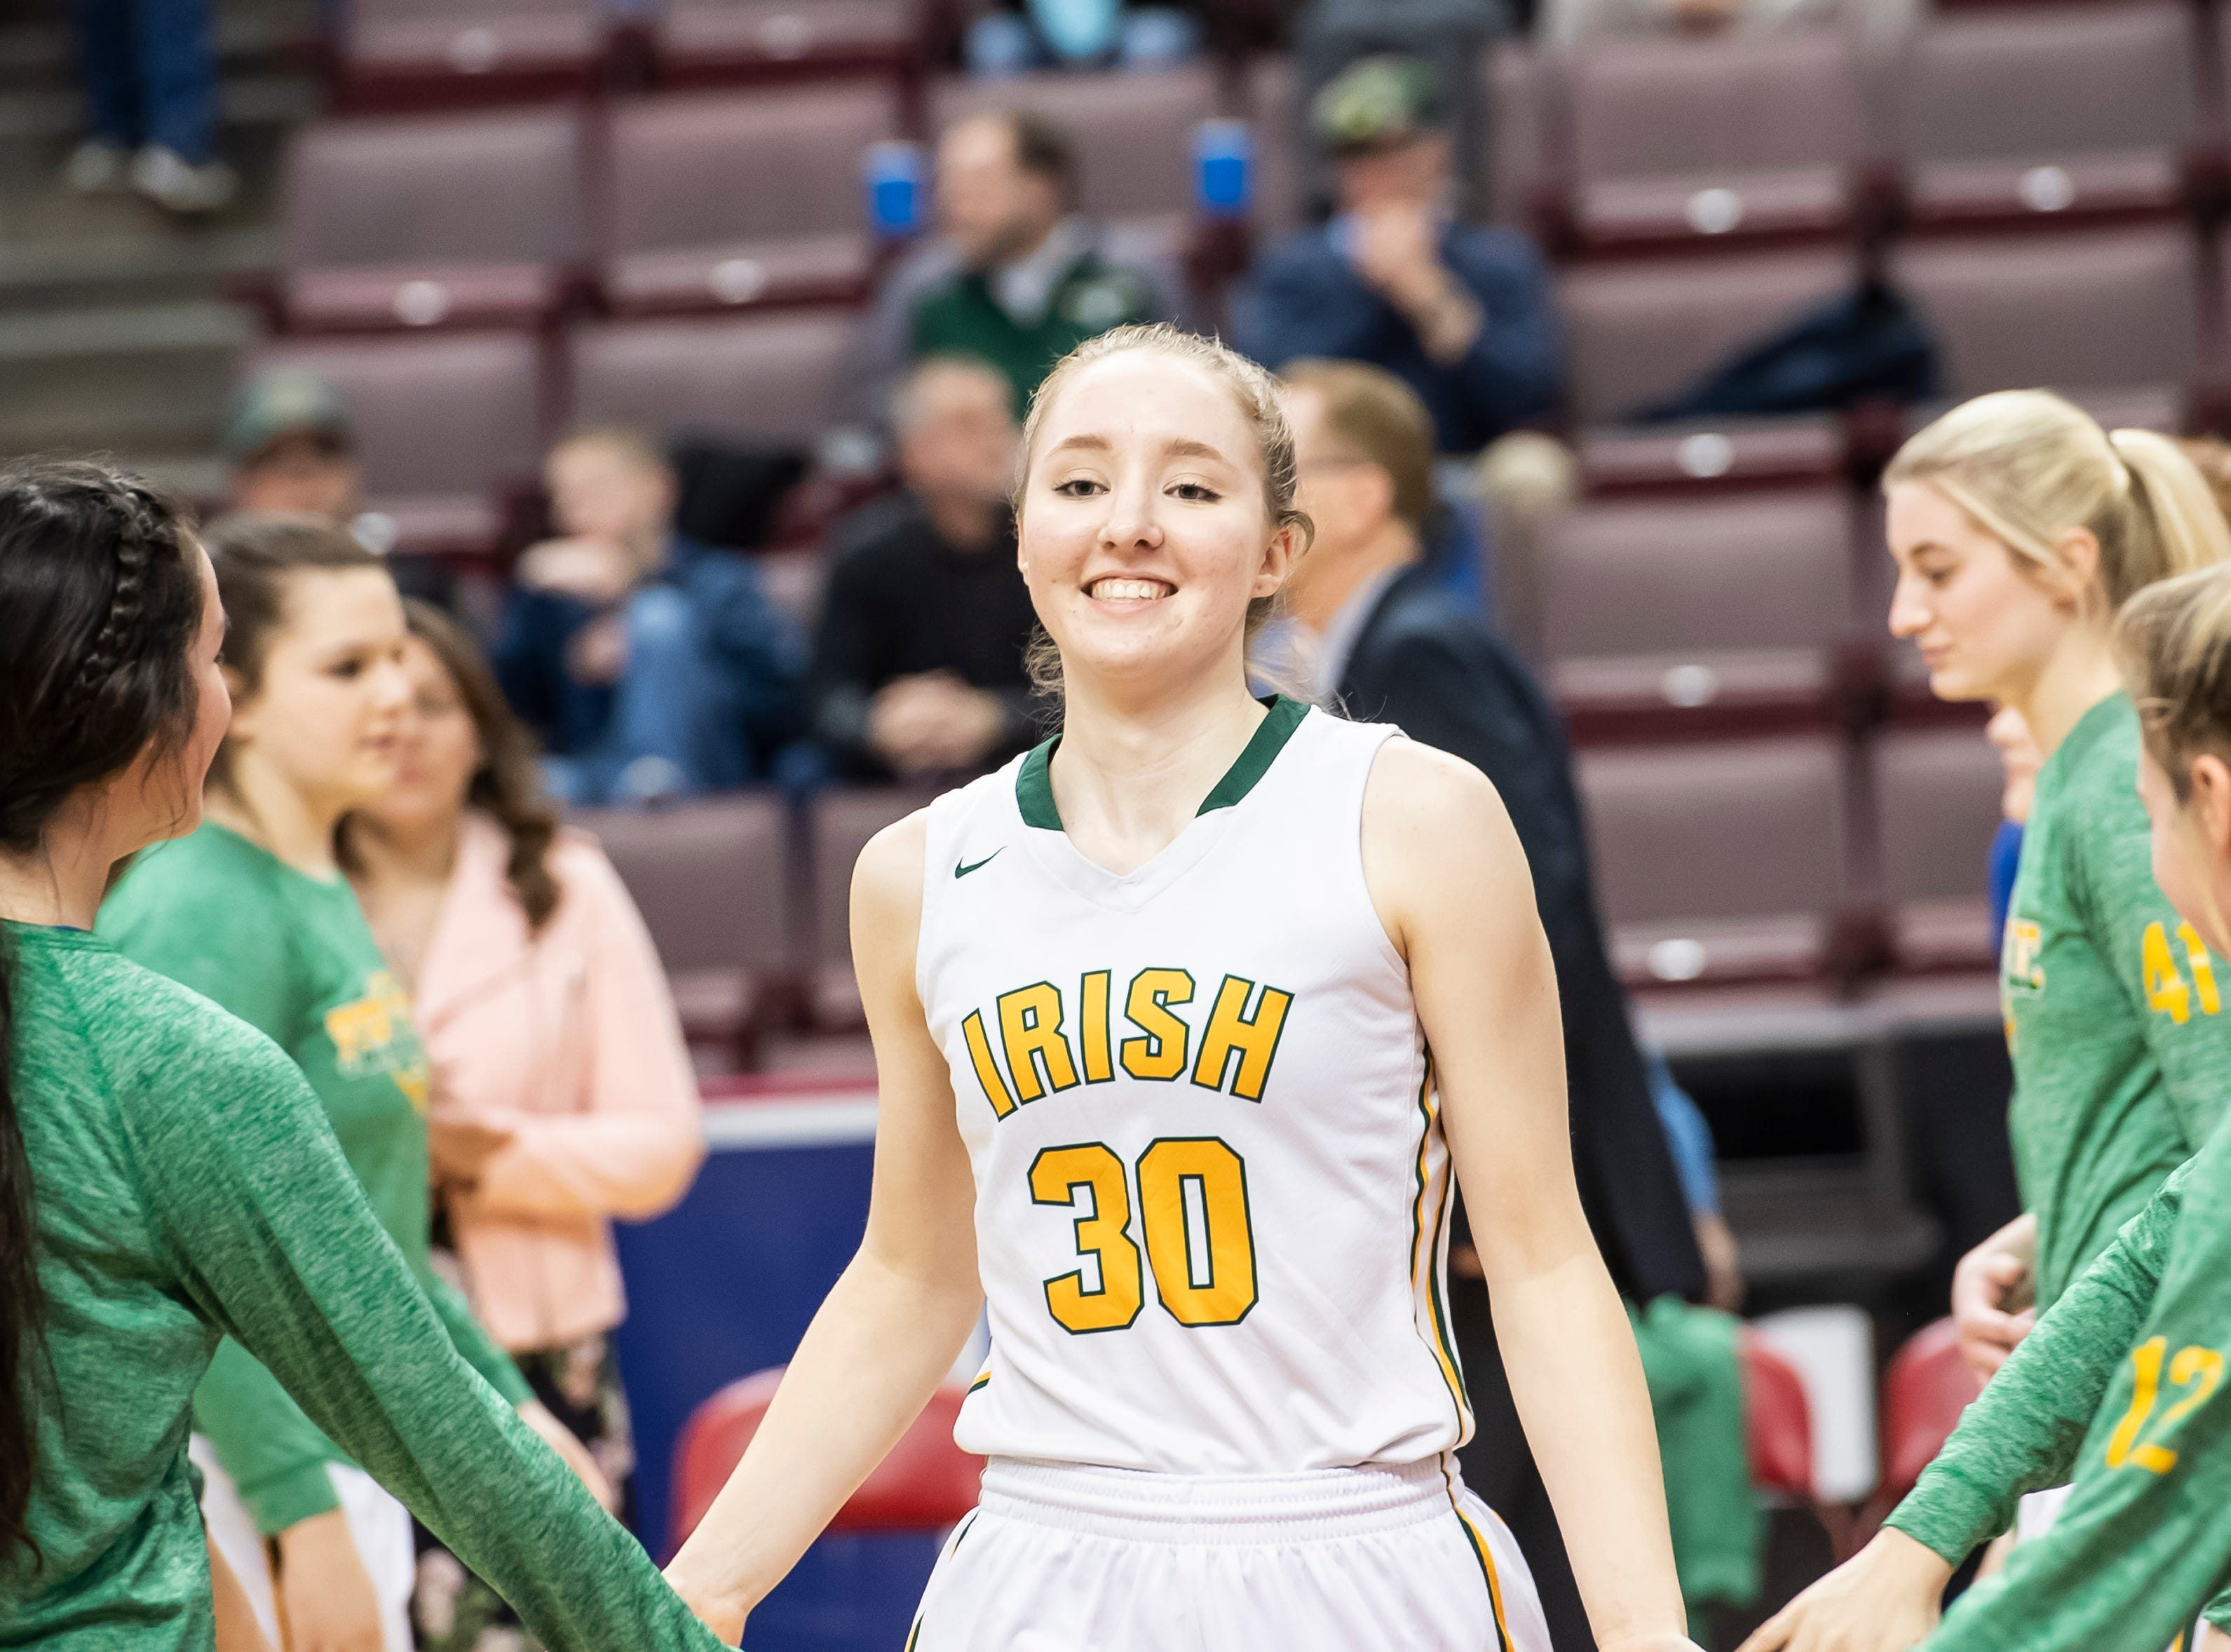 York Catholic's Katy Rader is introduced during the starting lineups in the District 3 2-A girls championship game against Linden Hall at the Giant Center in Hershey Tuesday, Feb. 26, 2019. The Fighting Irish fell 56-27.